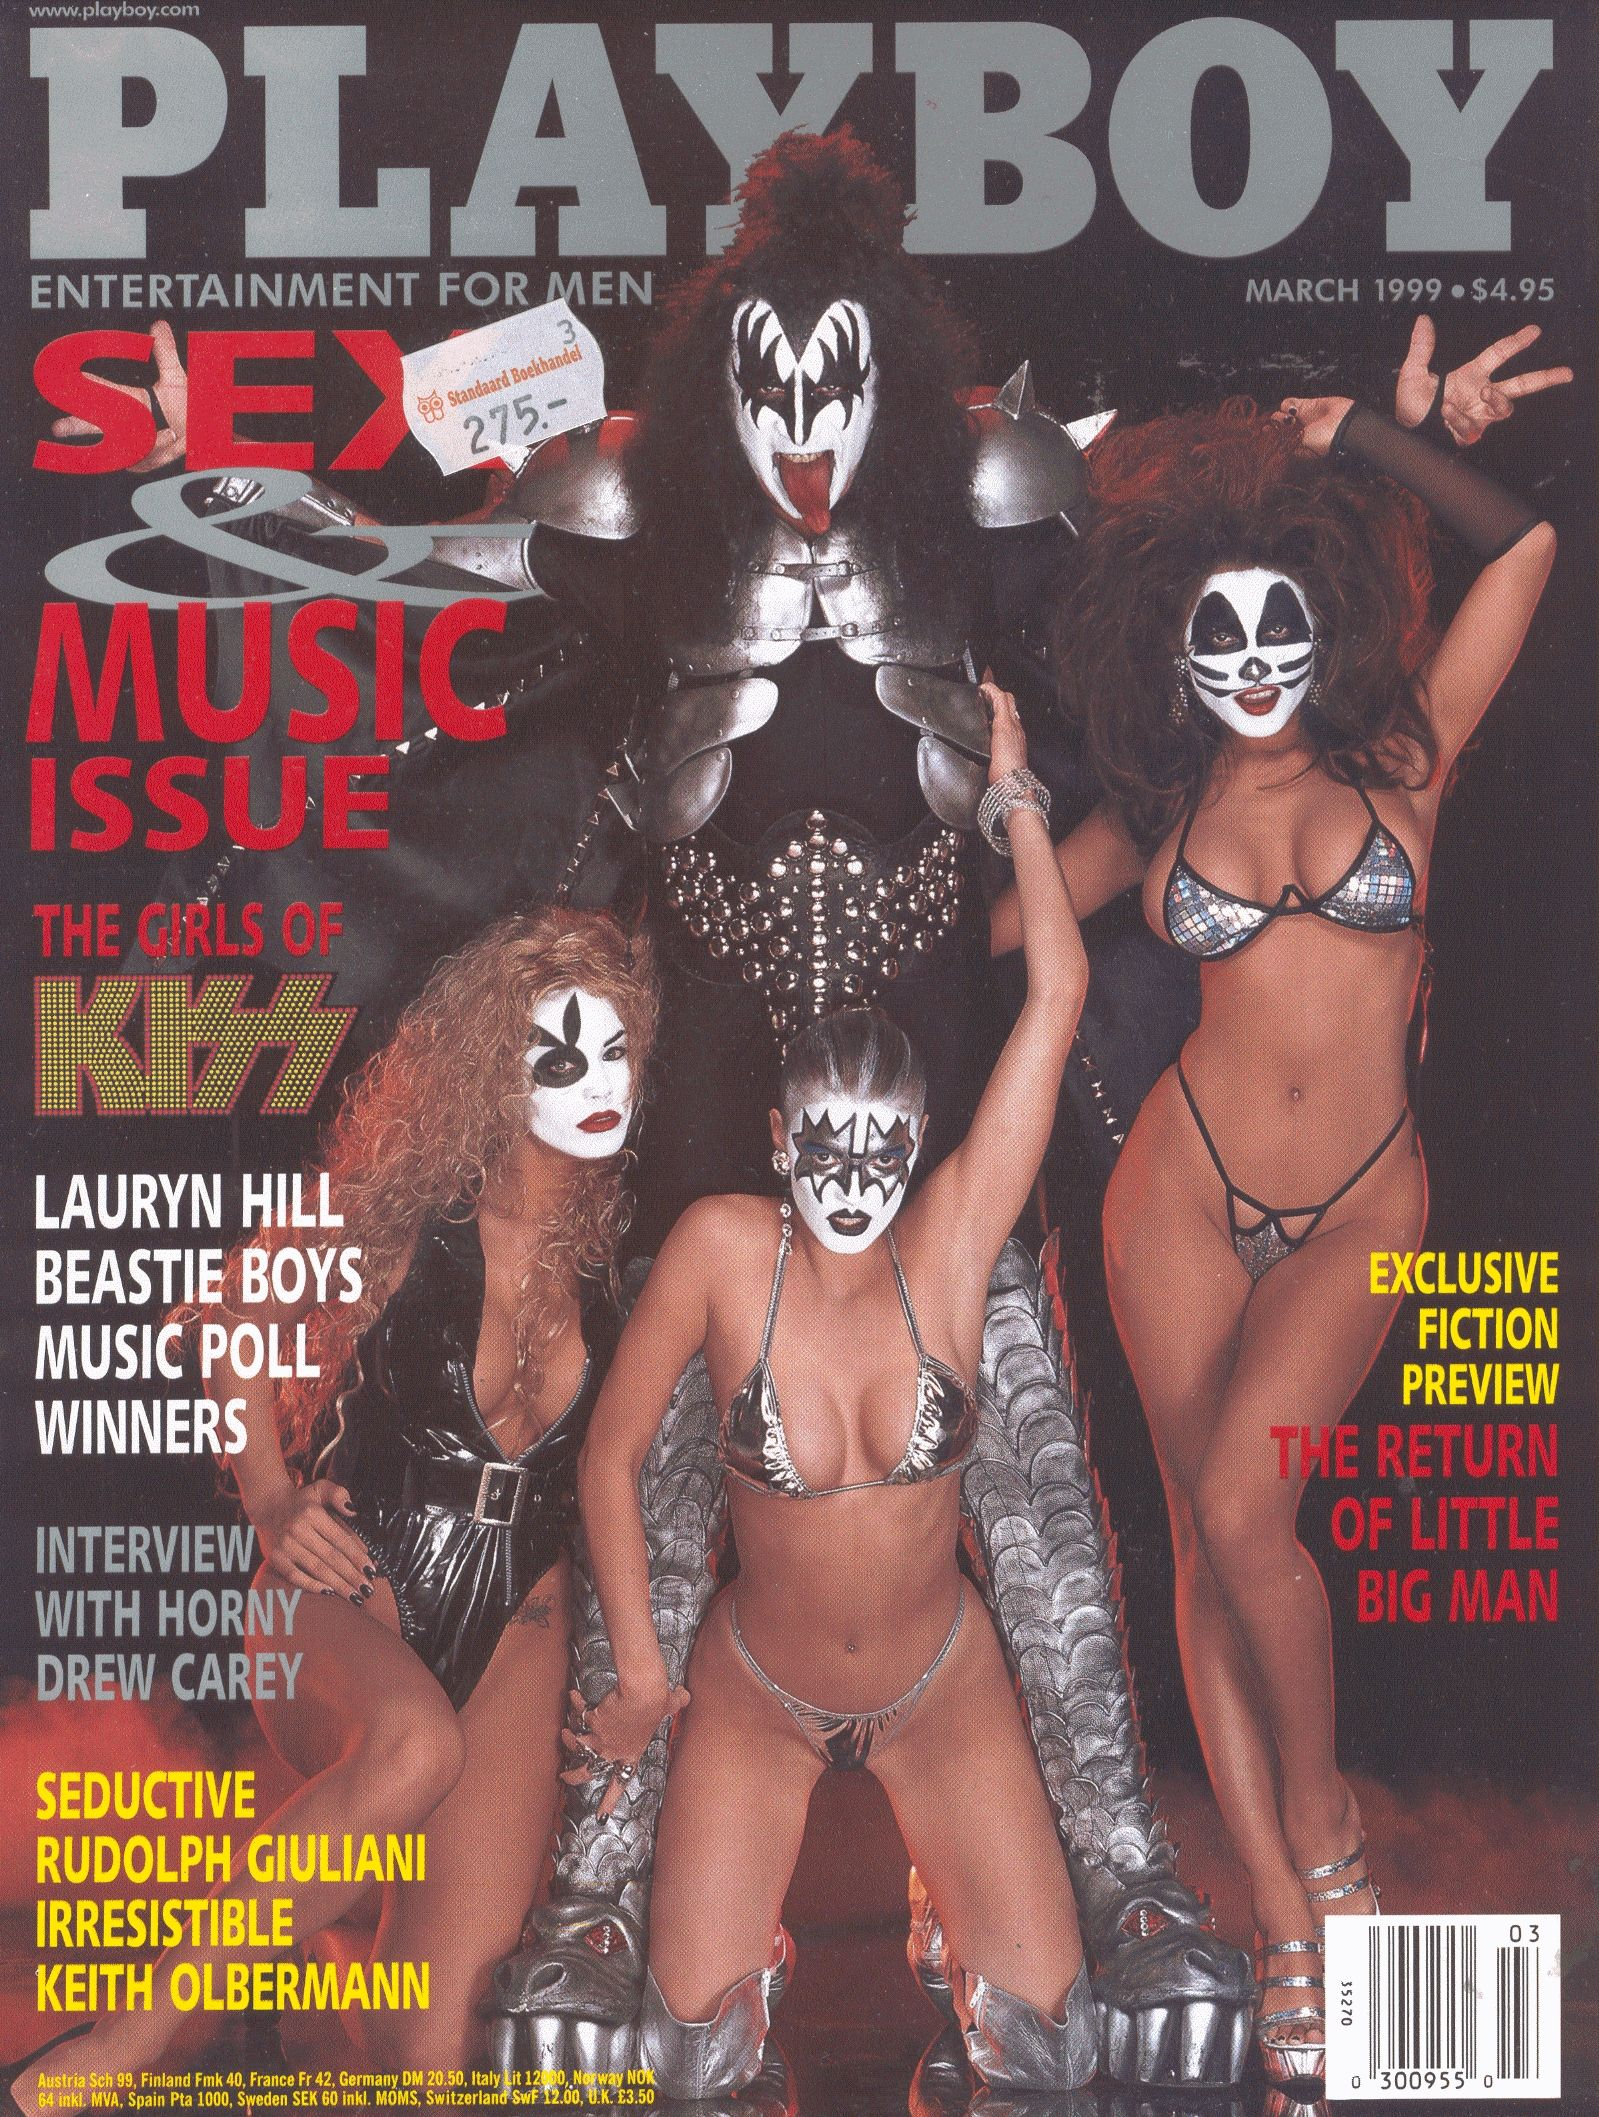 Gene Simmons Nude playboy cover (gene simmons, kiss) in 2019 | playboy, kiss